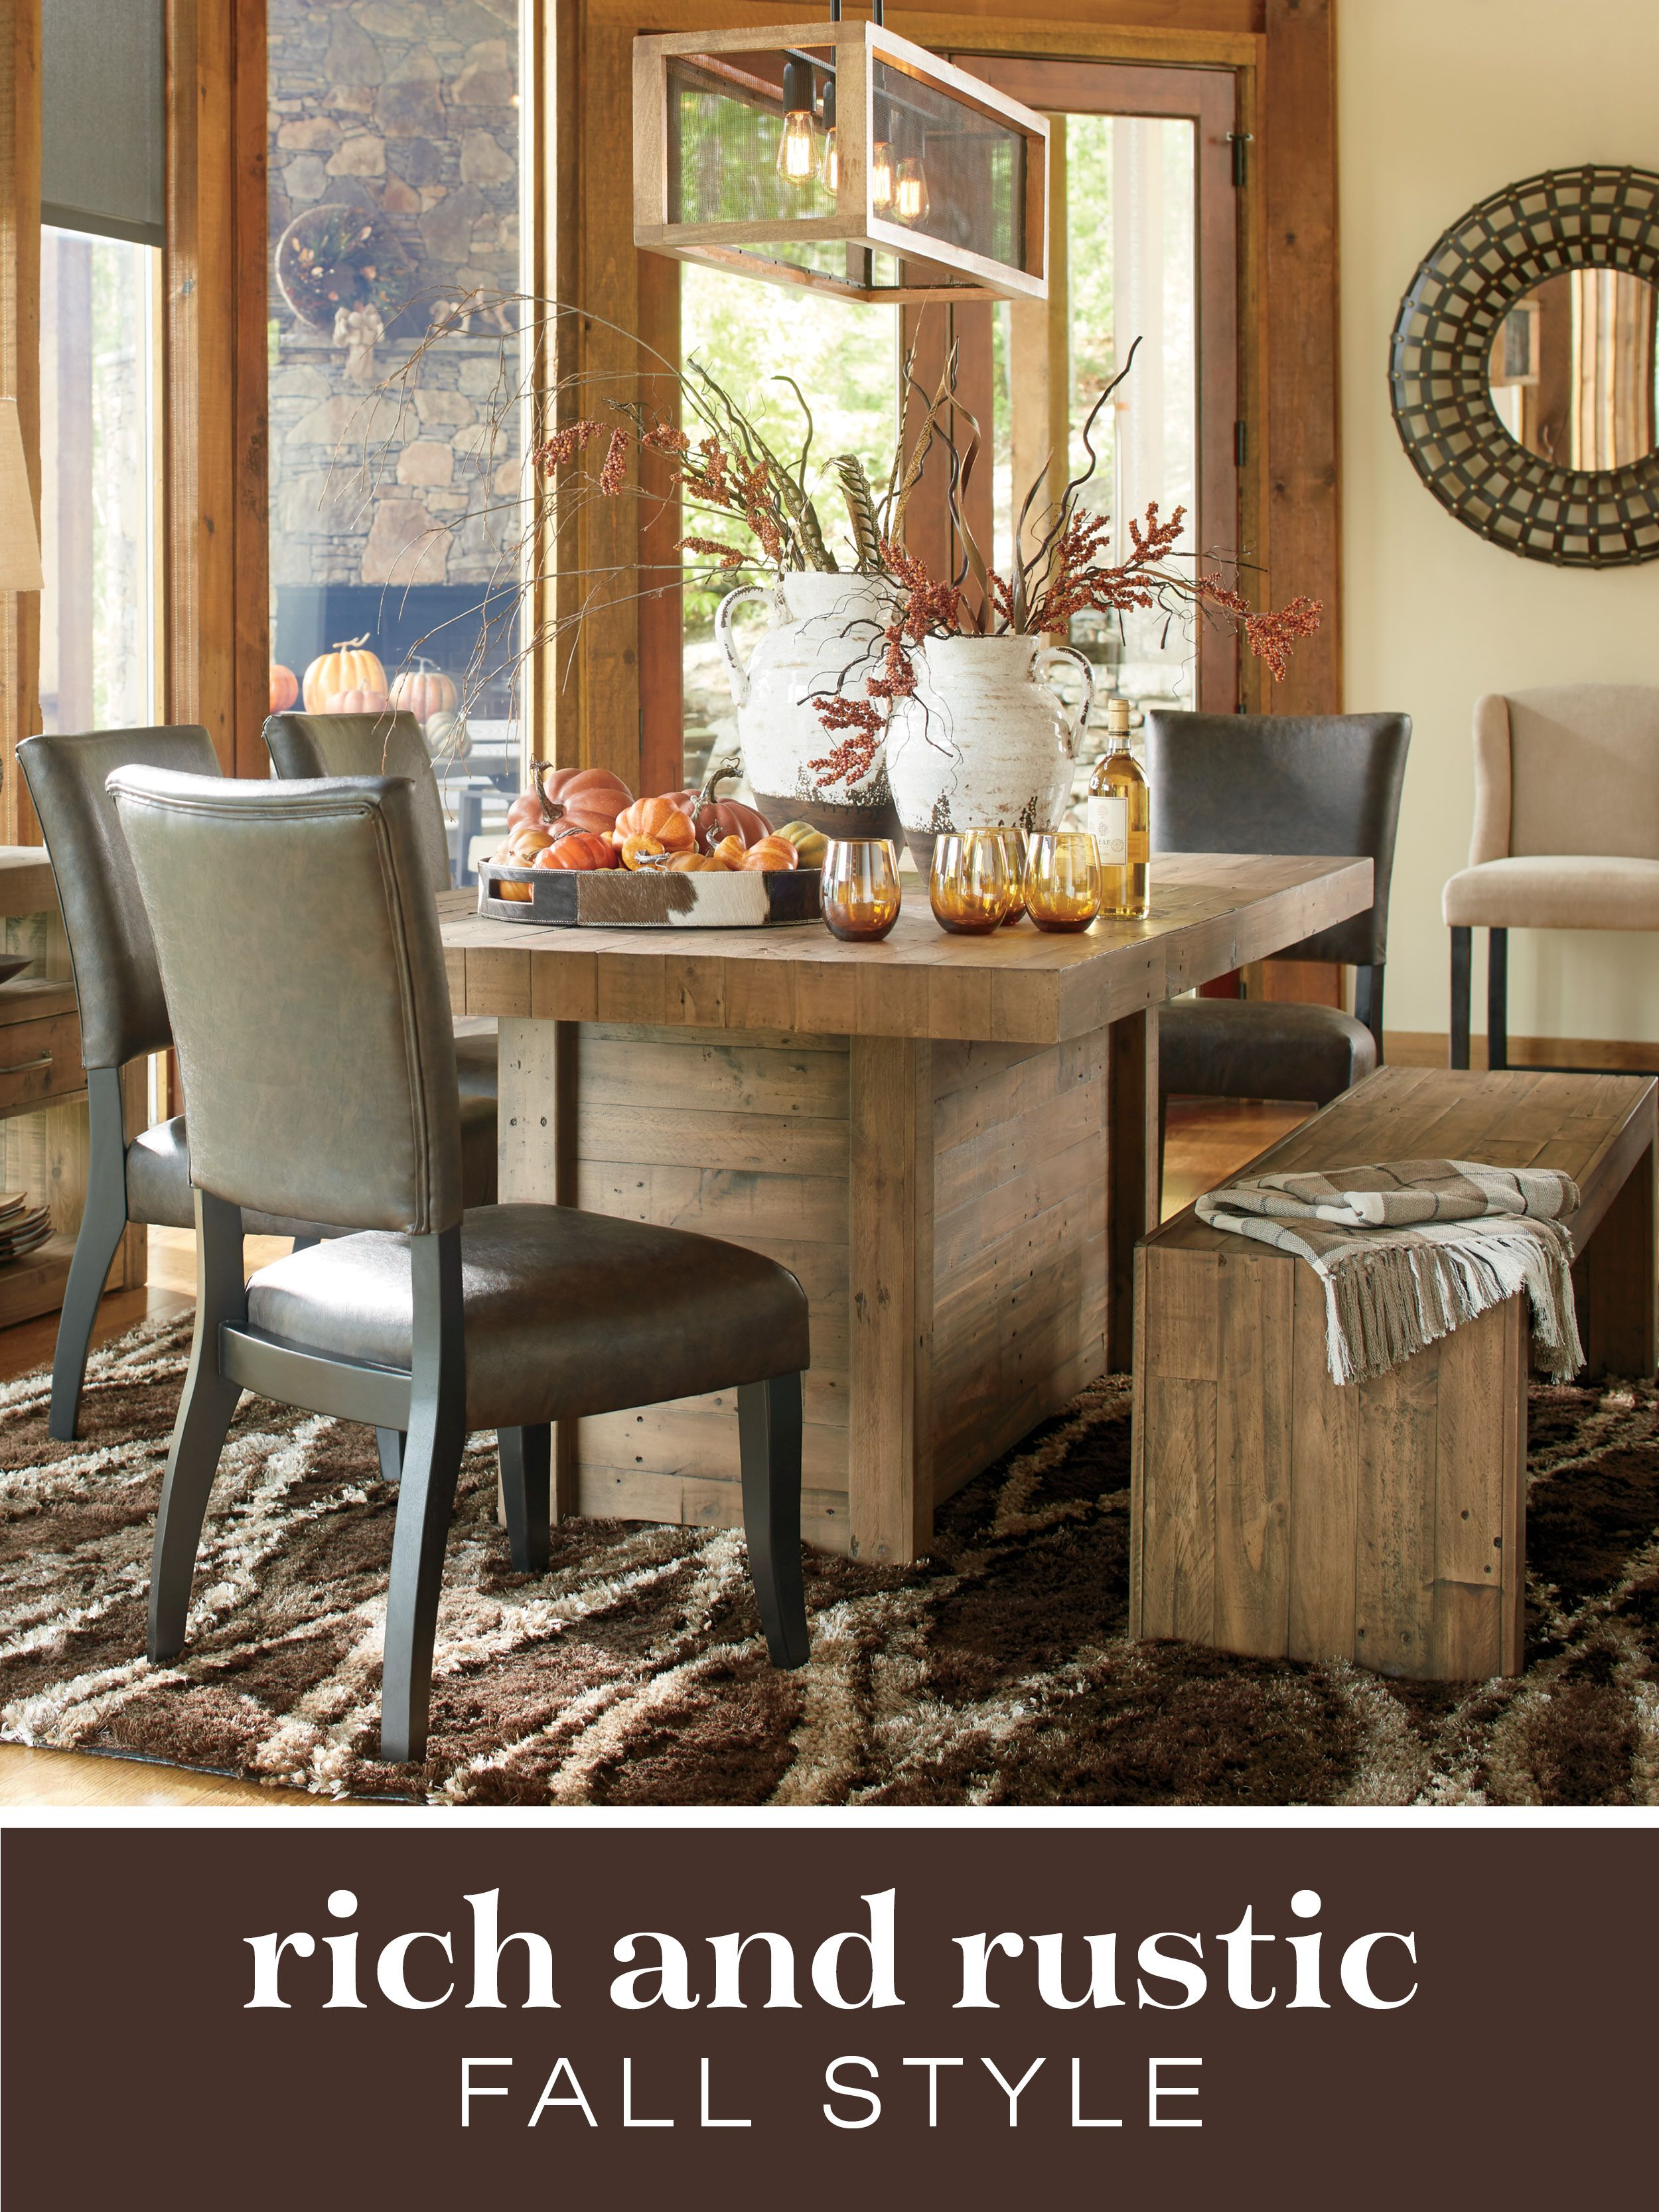 Sommerford Dining Room Furniture By Ashley Furniture. | #AshleyFurniture # Dining #Diningroom #Table #Chairs #Fall #Falldecor #Timberandtanning